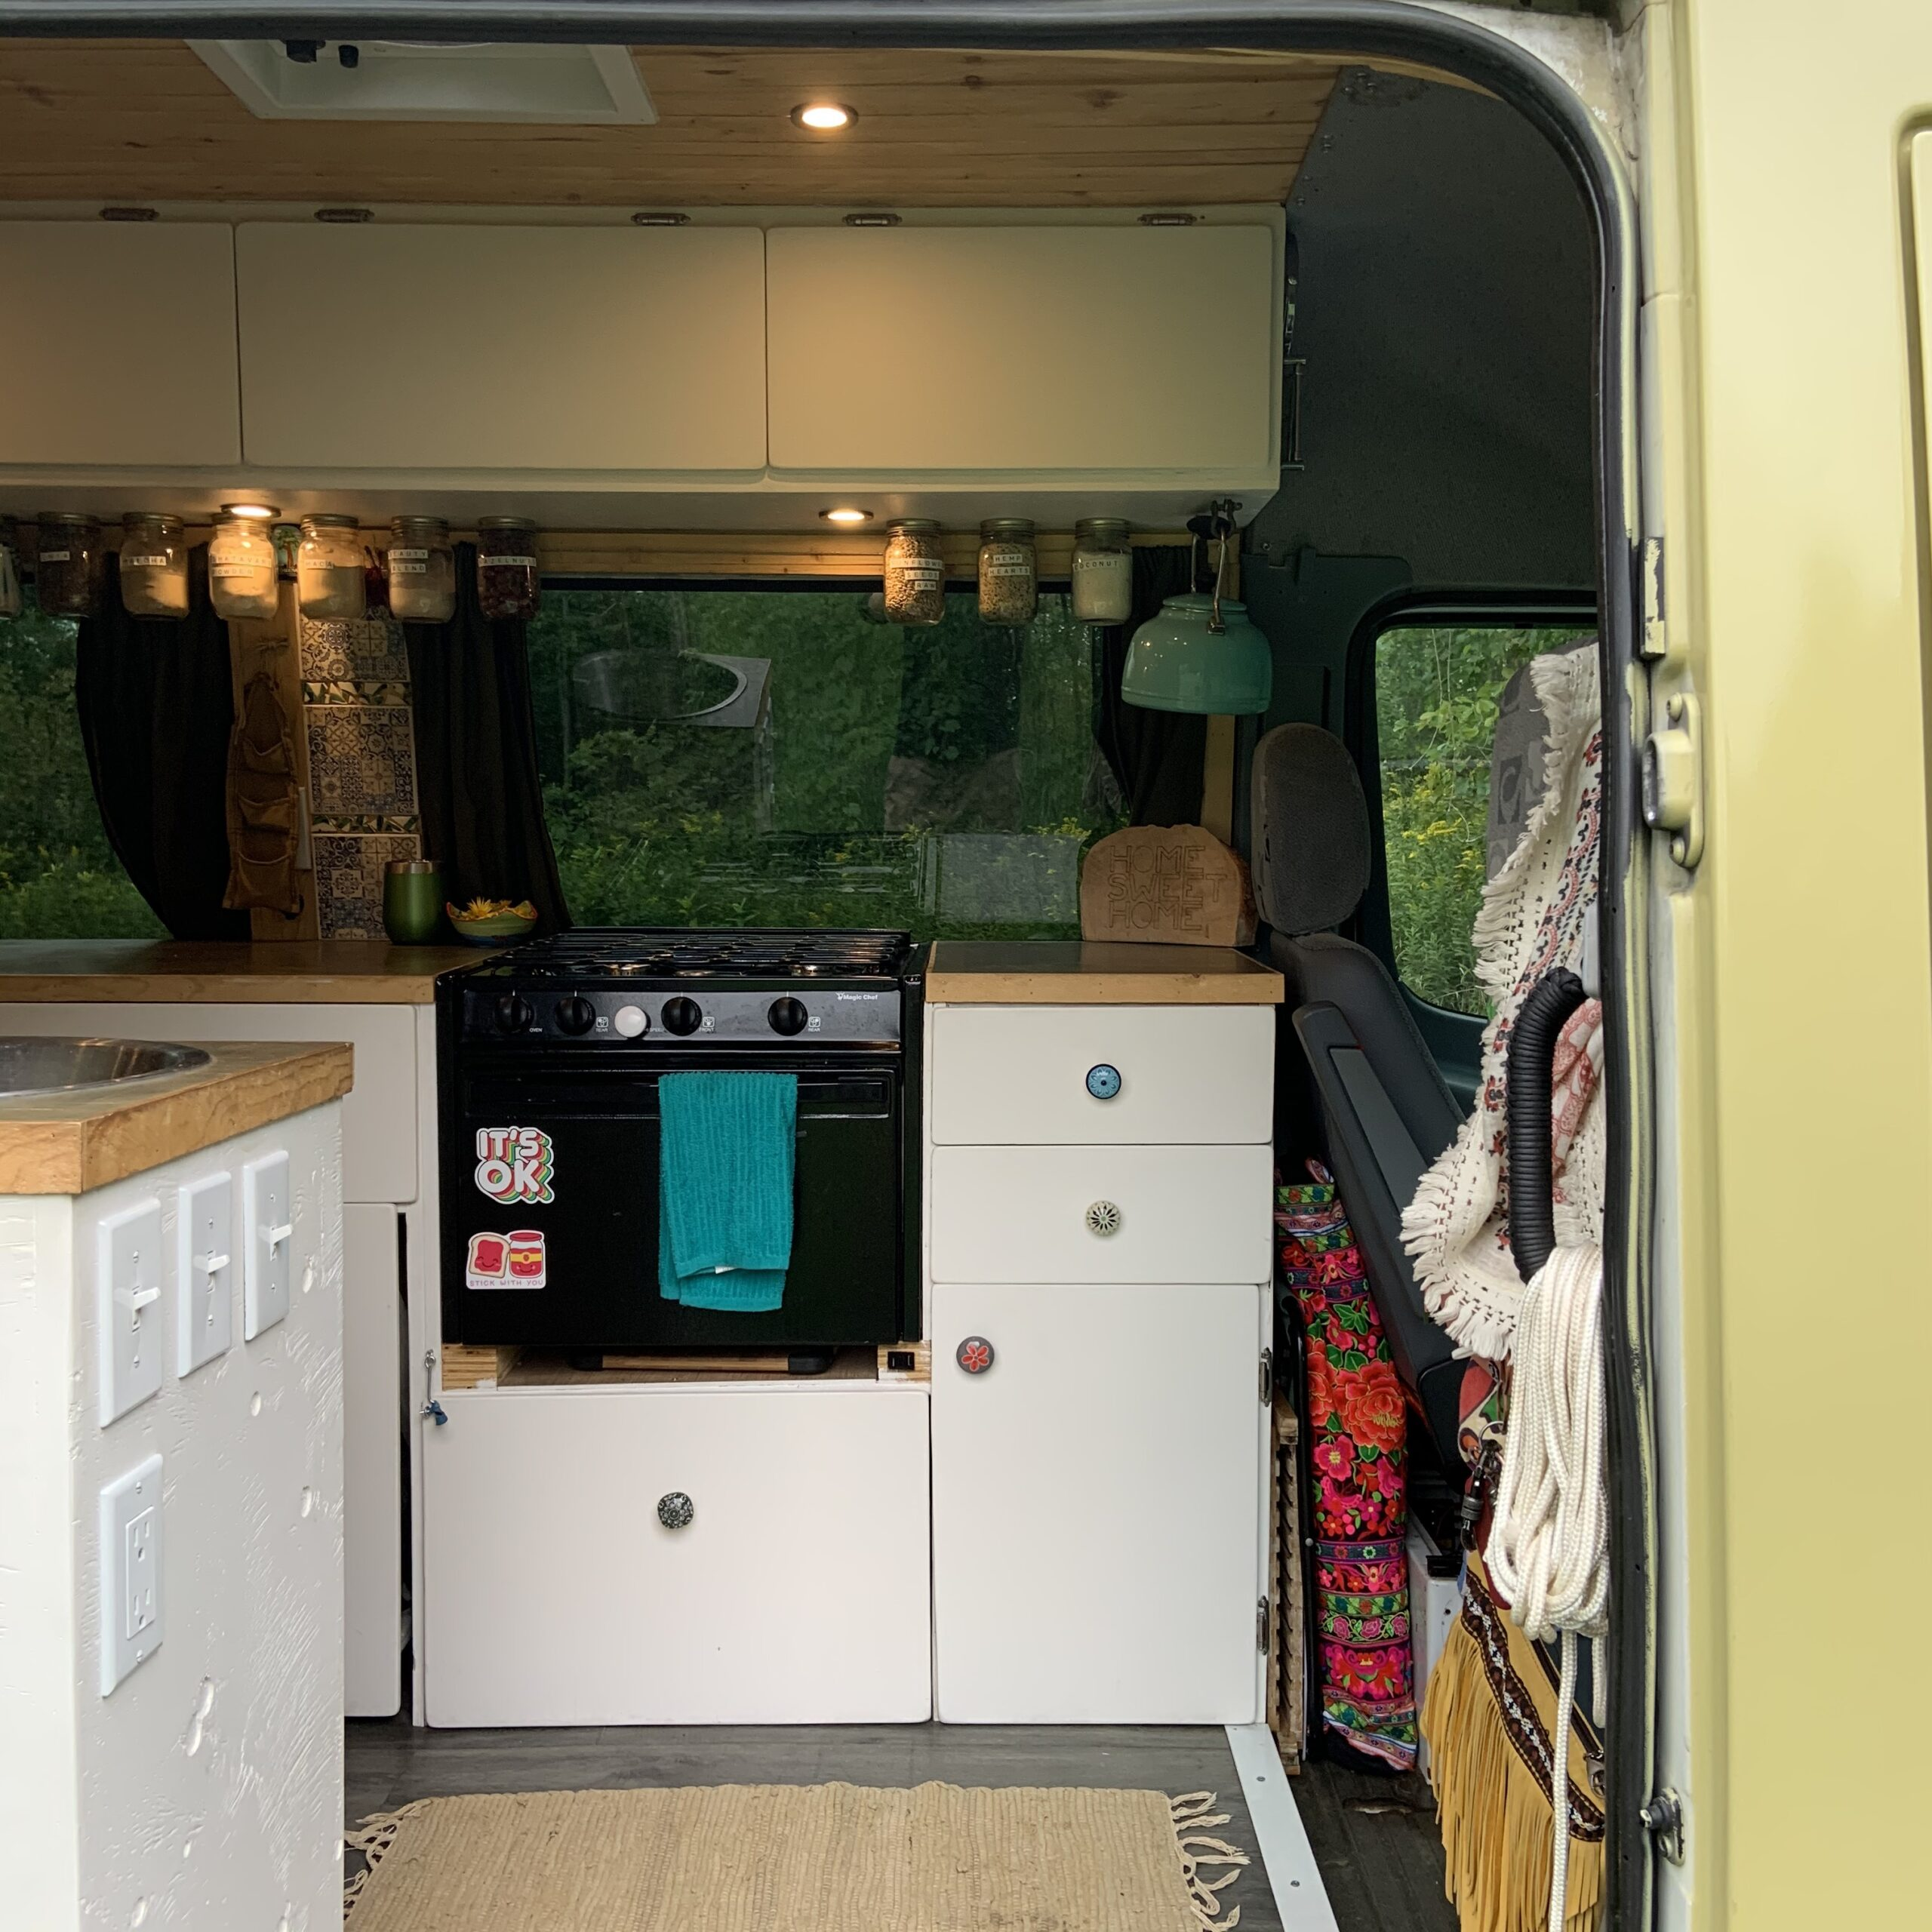 A clear shot of the DIY van conversion kitchen from the sliding door.